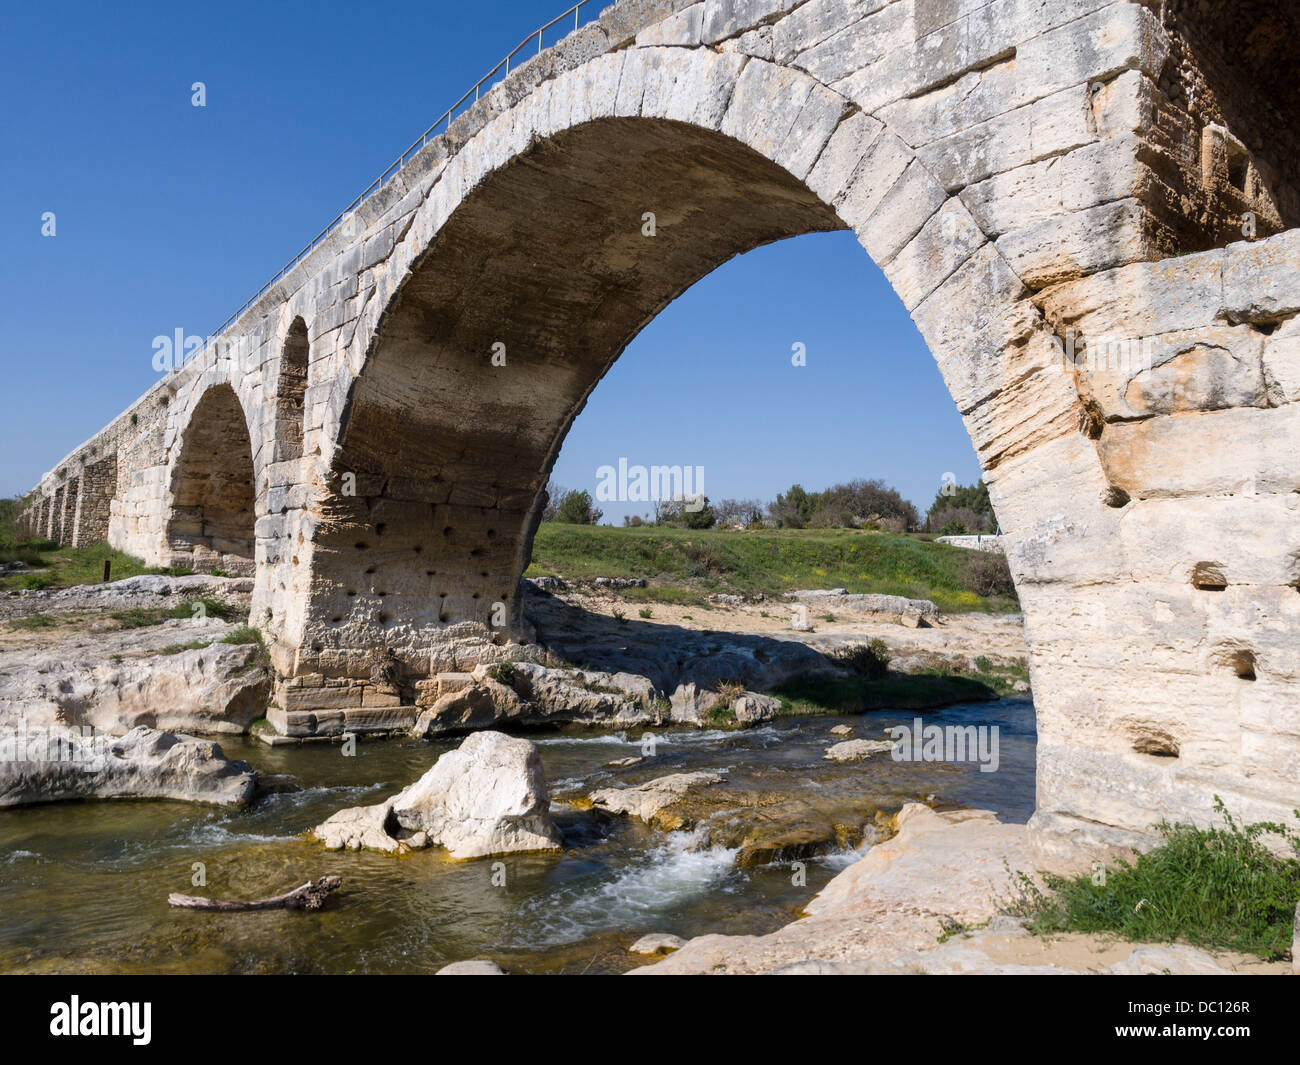 Pont Julien in Provence. The famous multi-arched stone bridge spans the Calavon and part of the ancient Roman road - Stock Image